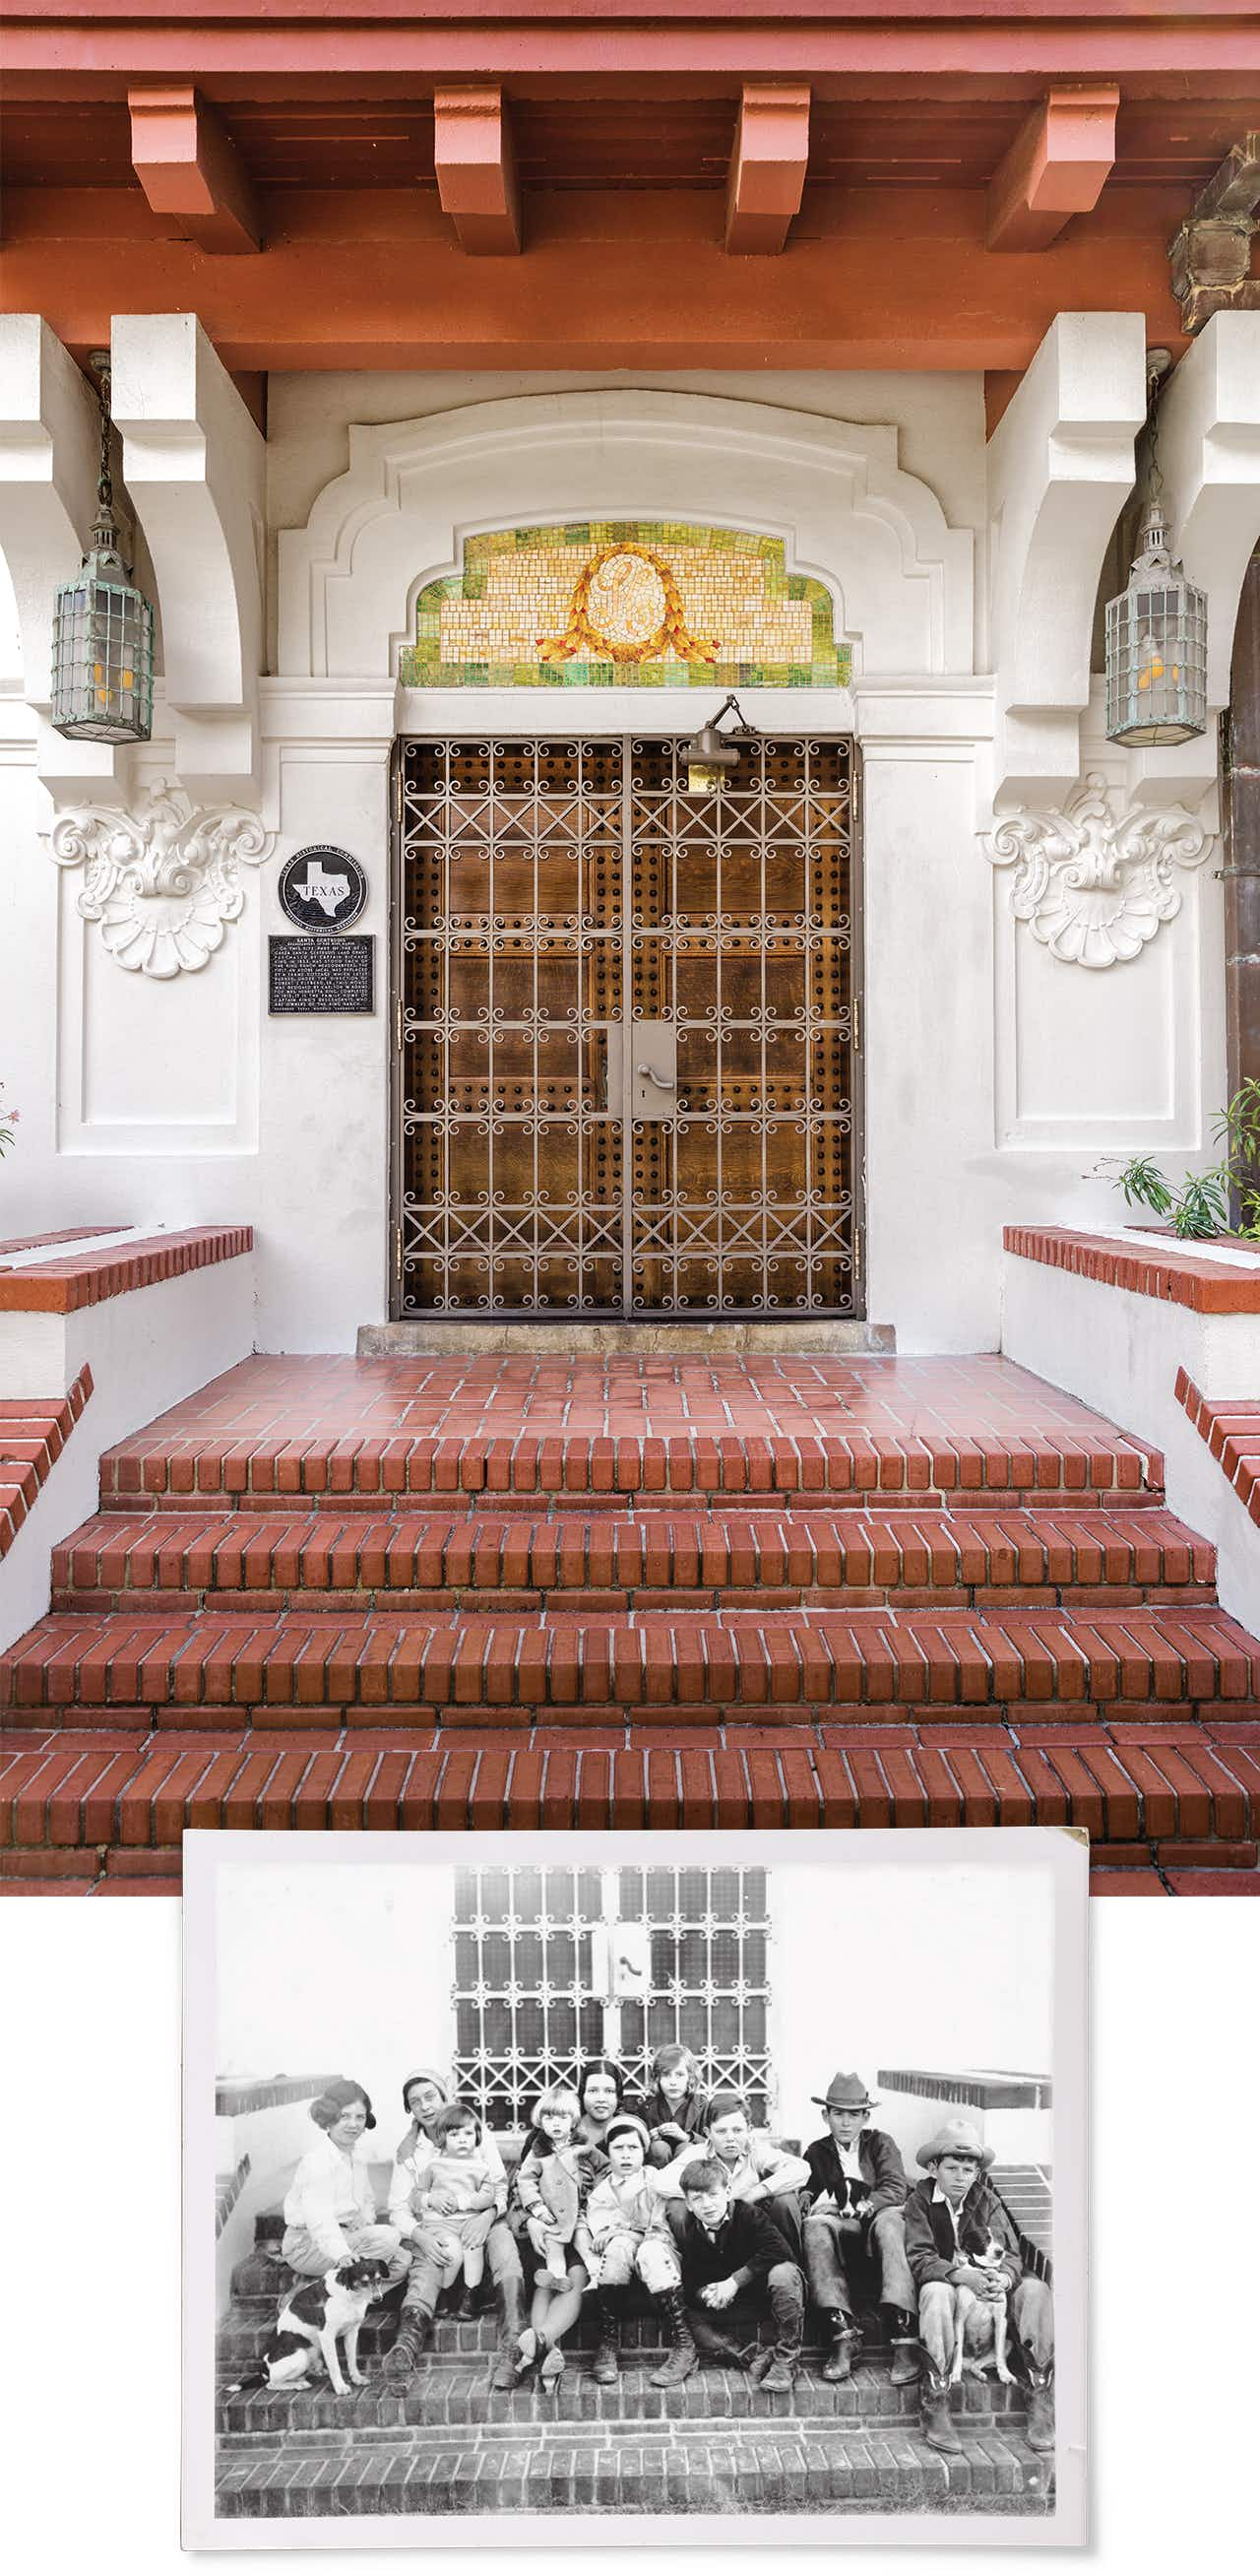 The north entrance to the house features art glass inlaid with the letter K above the door and an ornamental gate designed by Tiffany; the members of the King family sit outside that same north entrance in an undated photo.